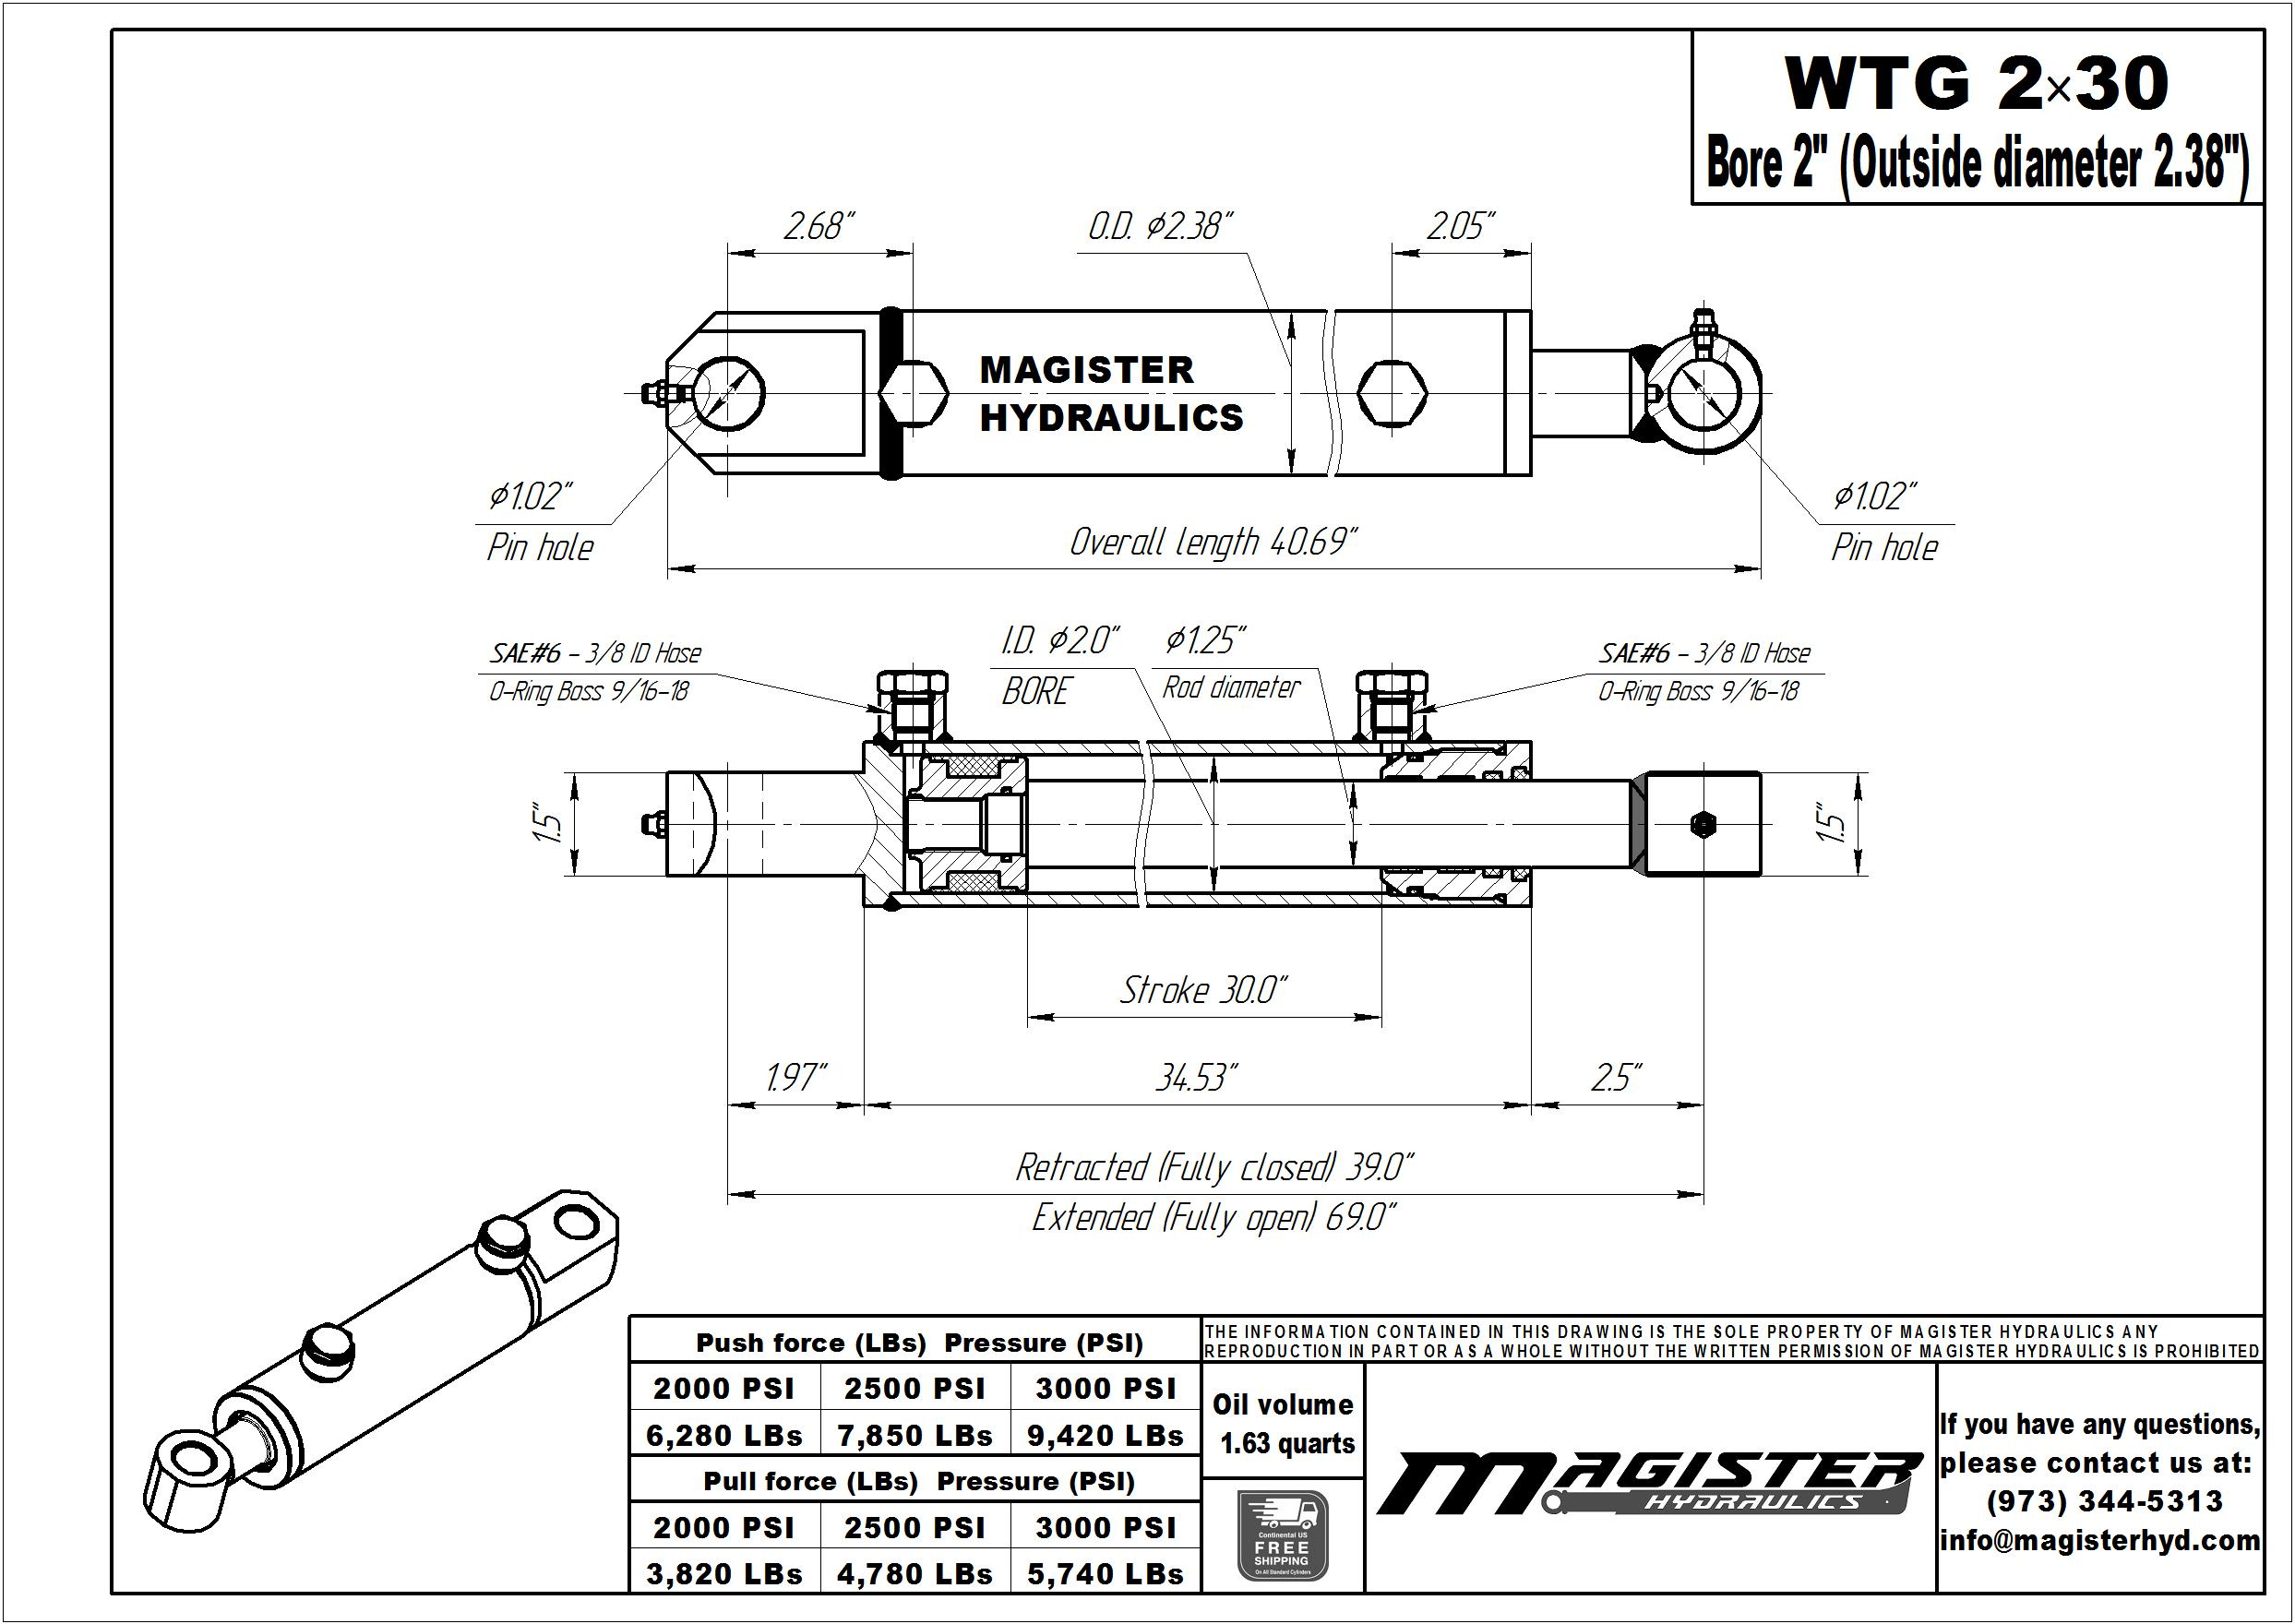 2 bore x 30 stroke hydraulic cylinder, welded tang double acting cylinder | Magister Hydraulics